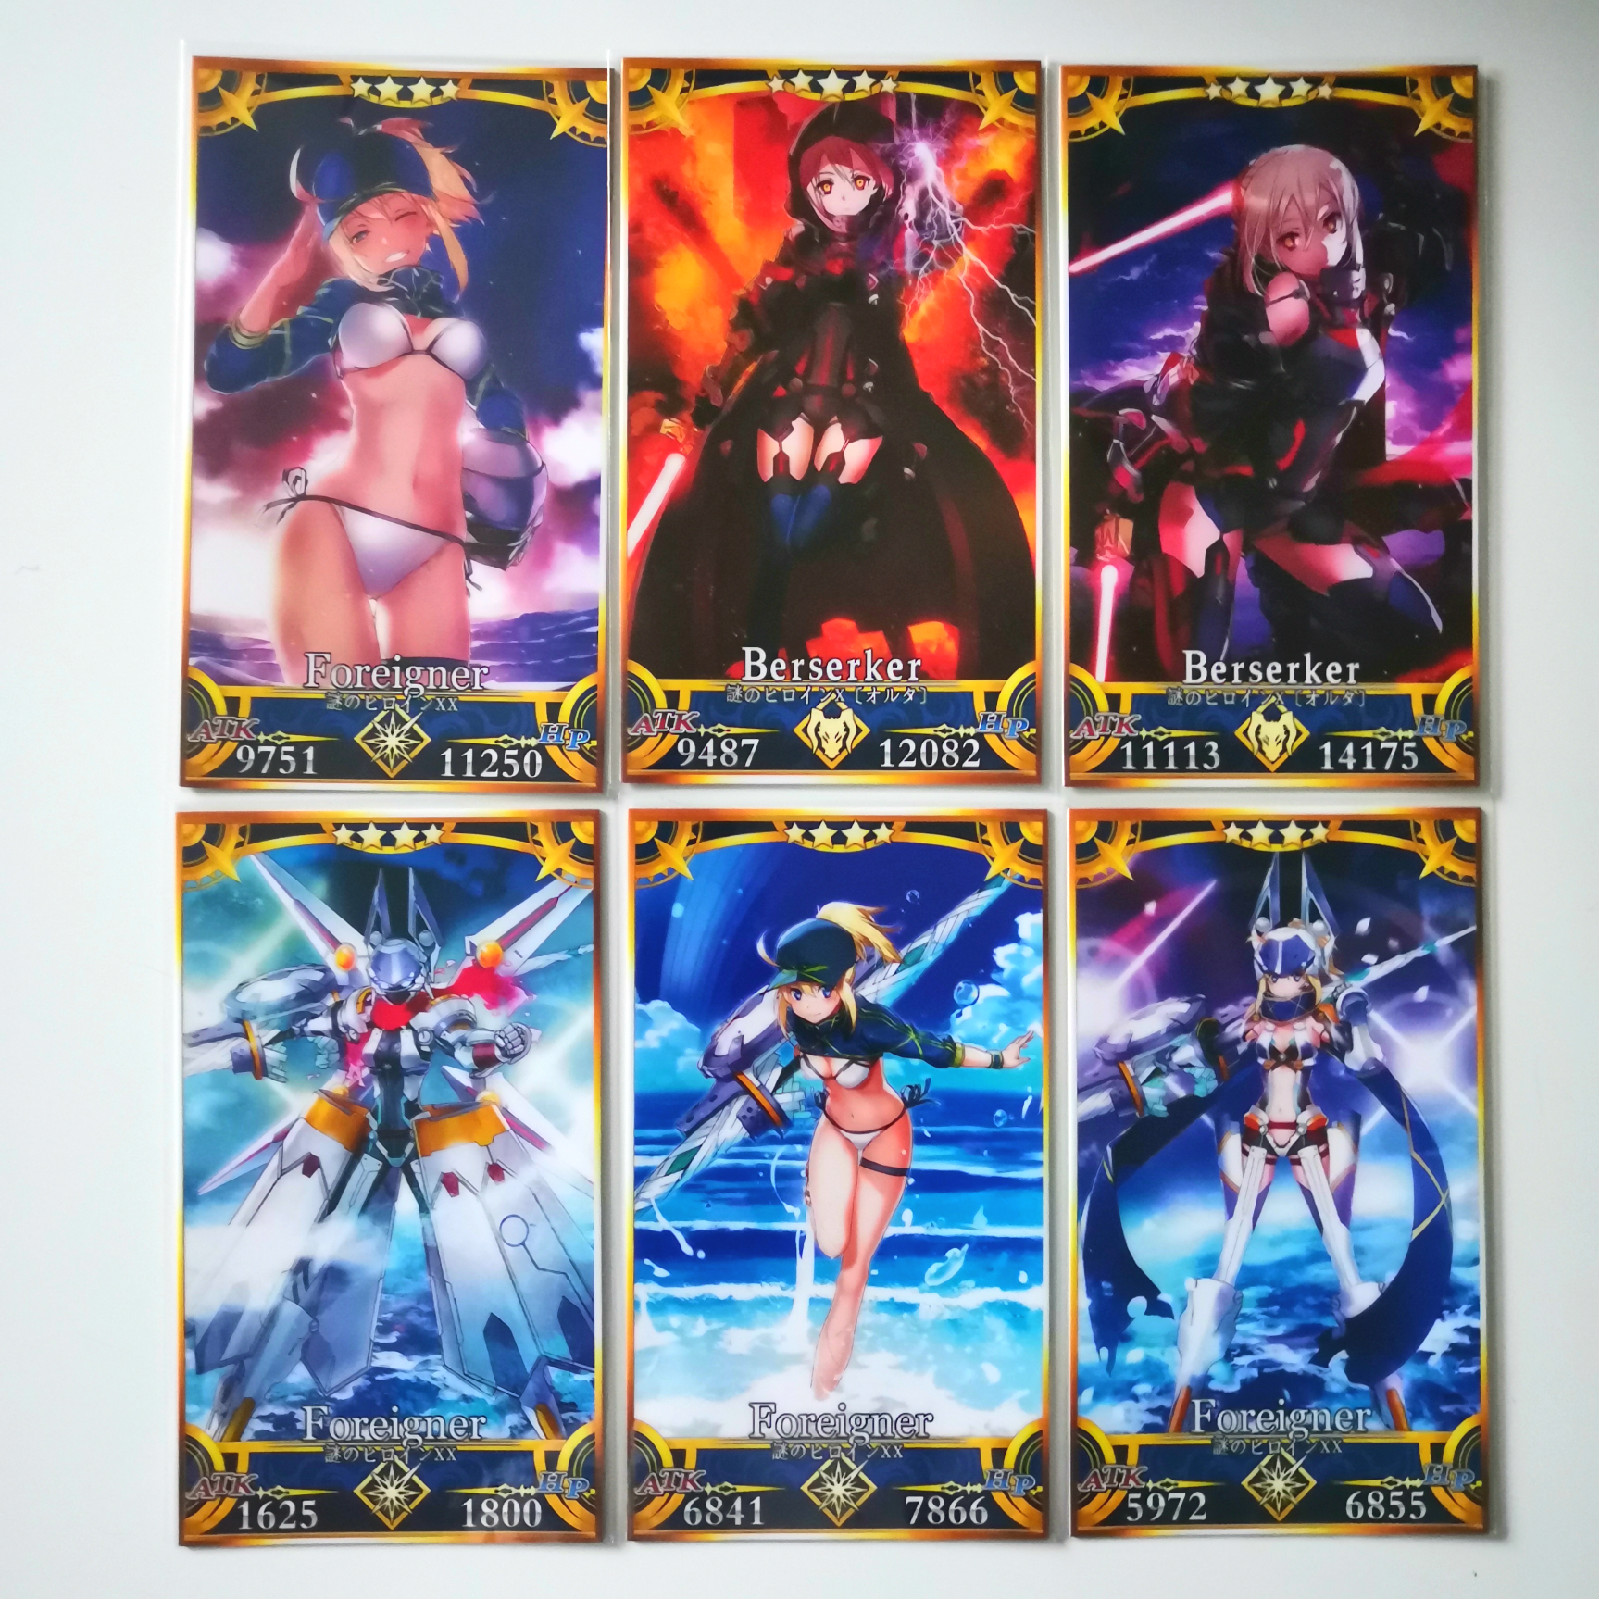 42pcs/set Fate Zero Toys Hobbies Hobby Collectibles Game Collection Anime Cards